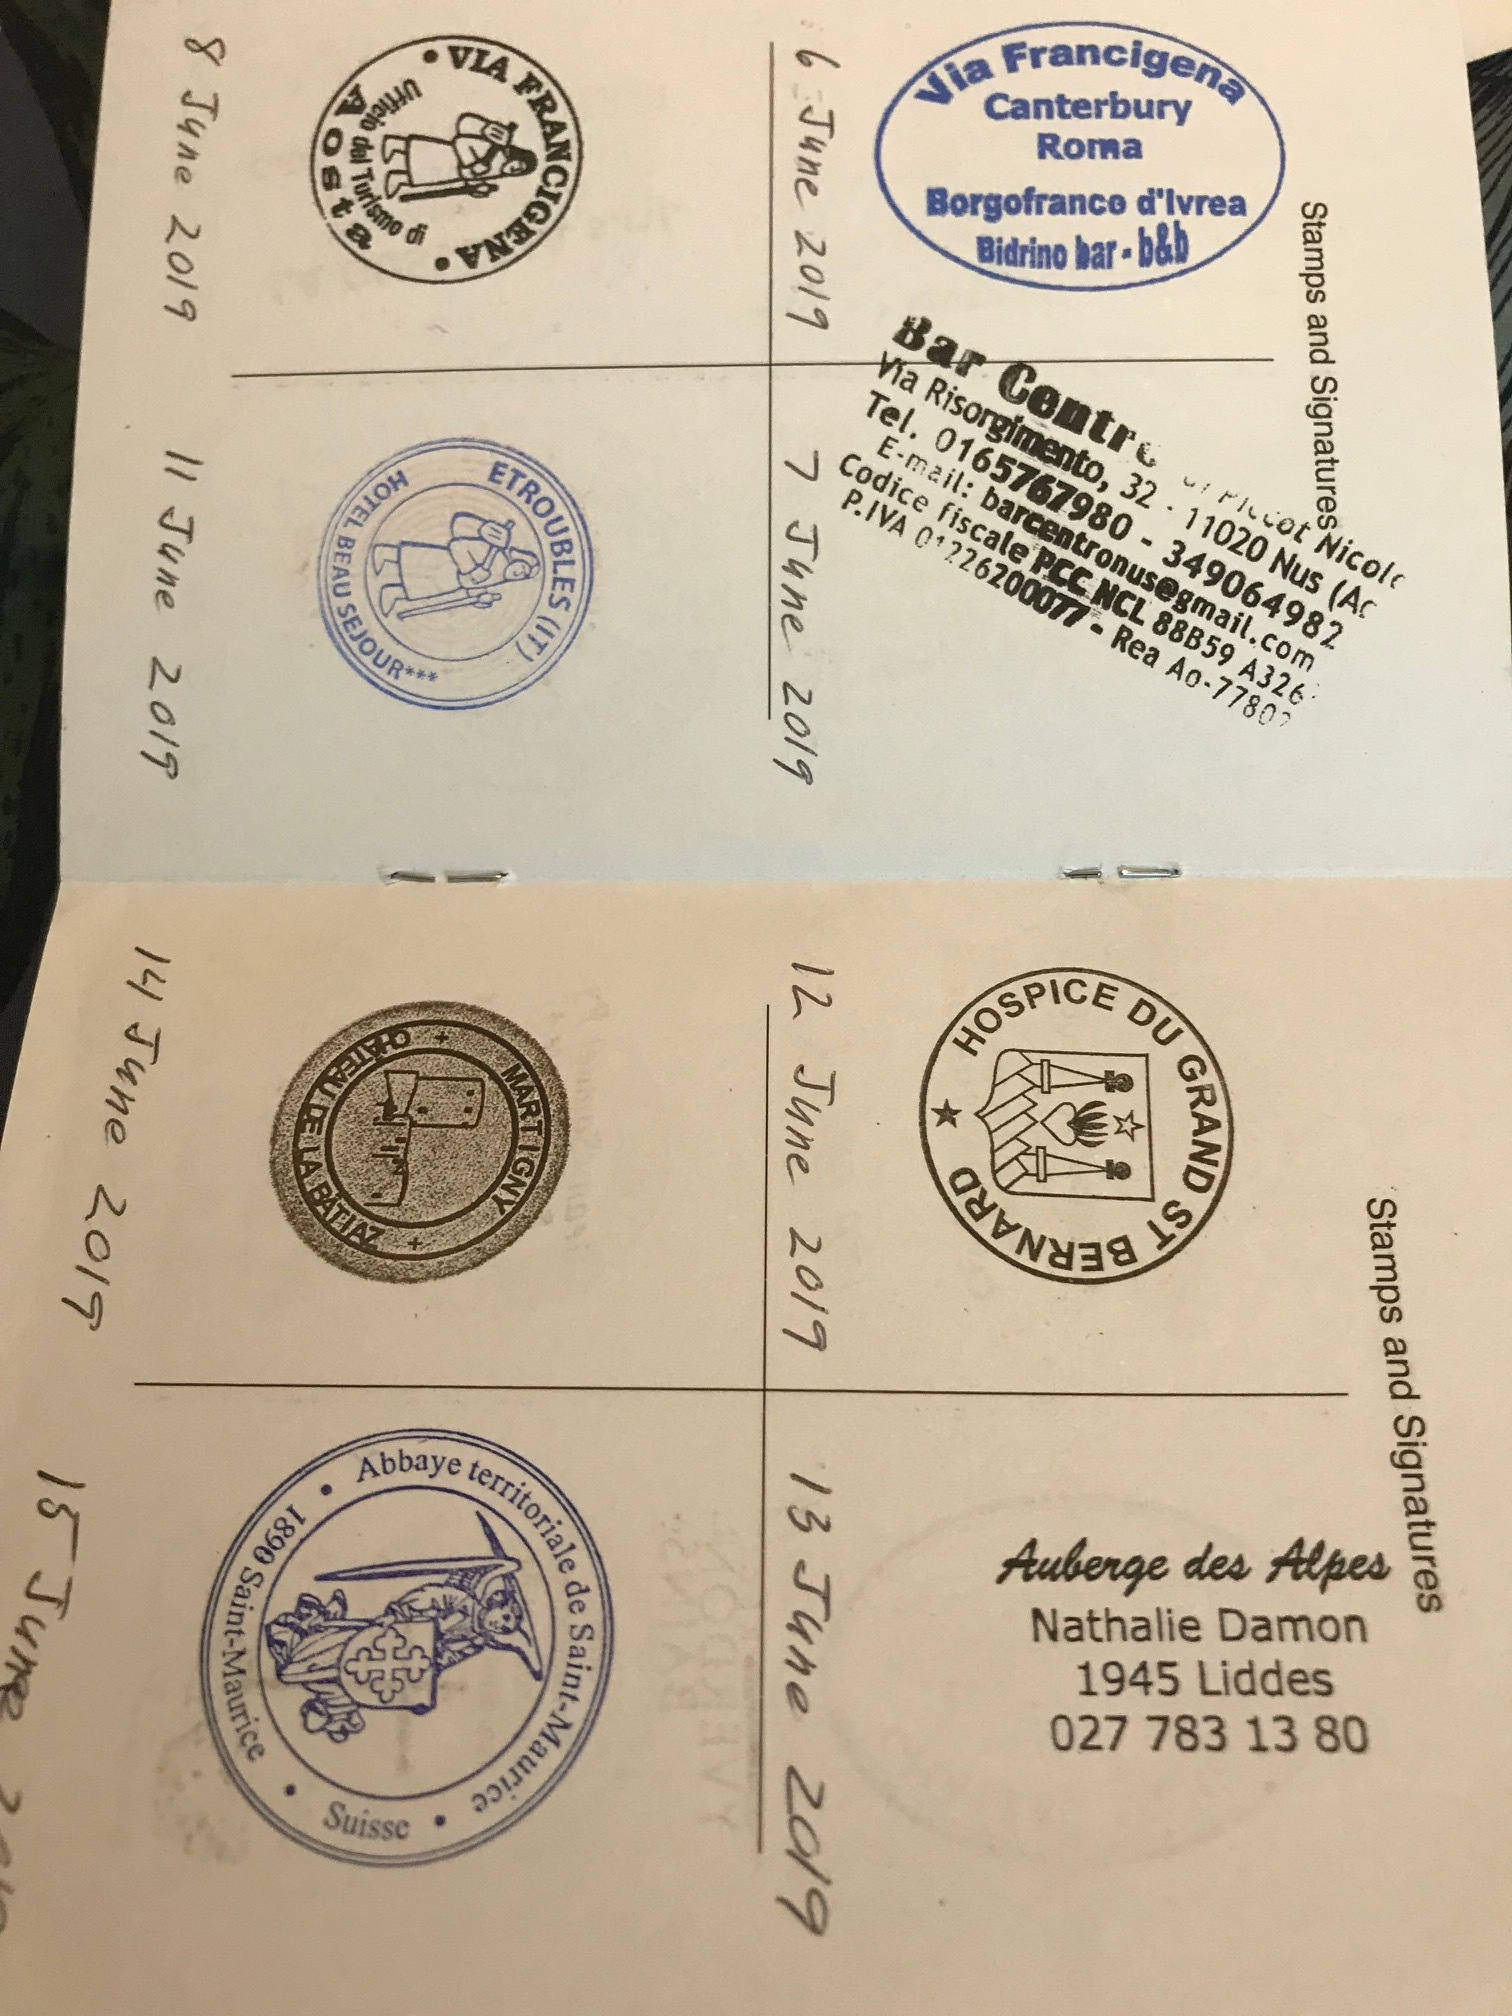 A page of stamps